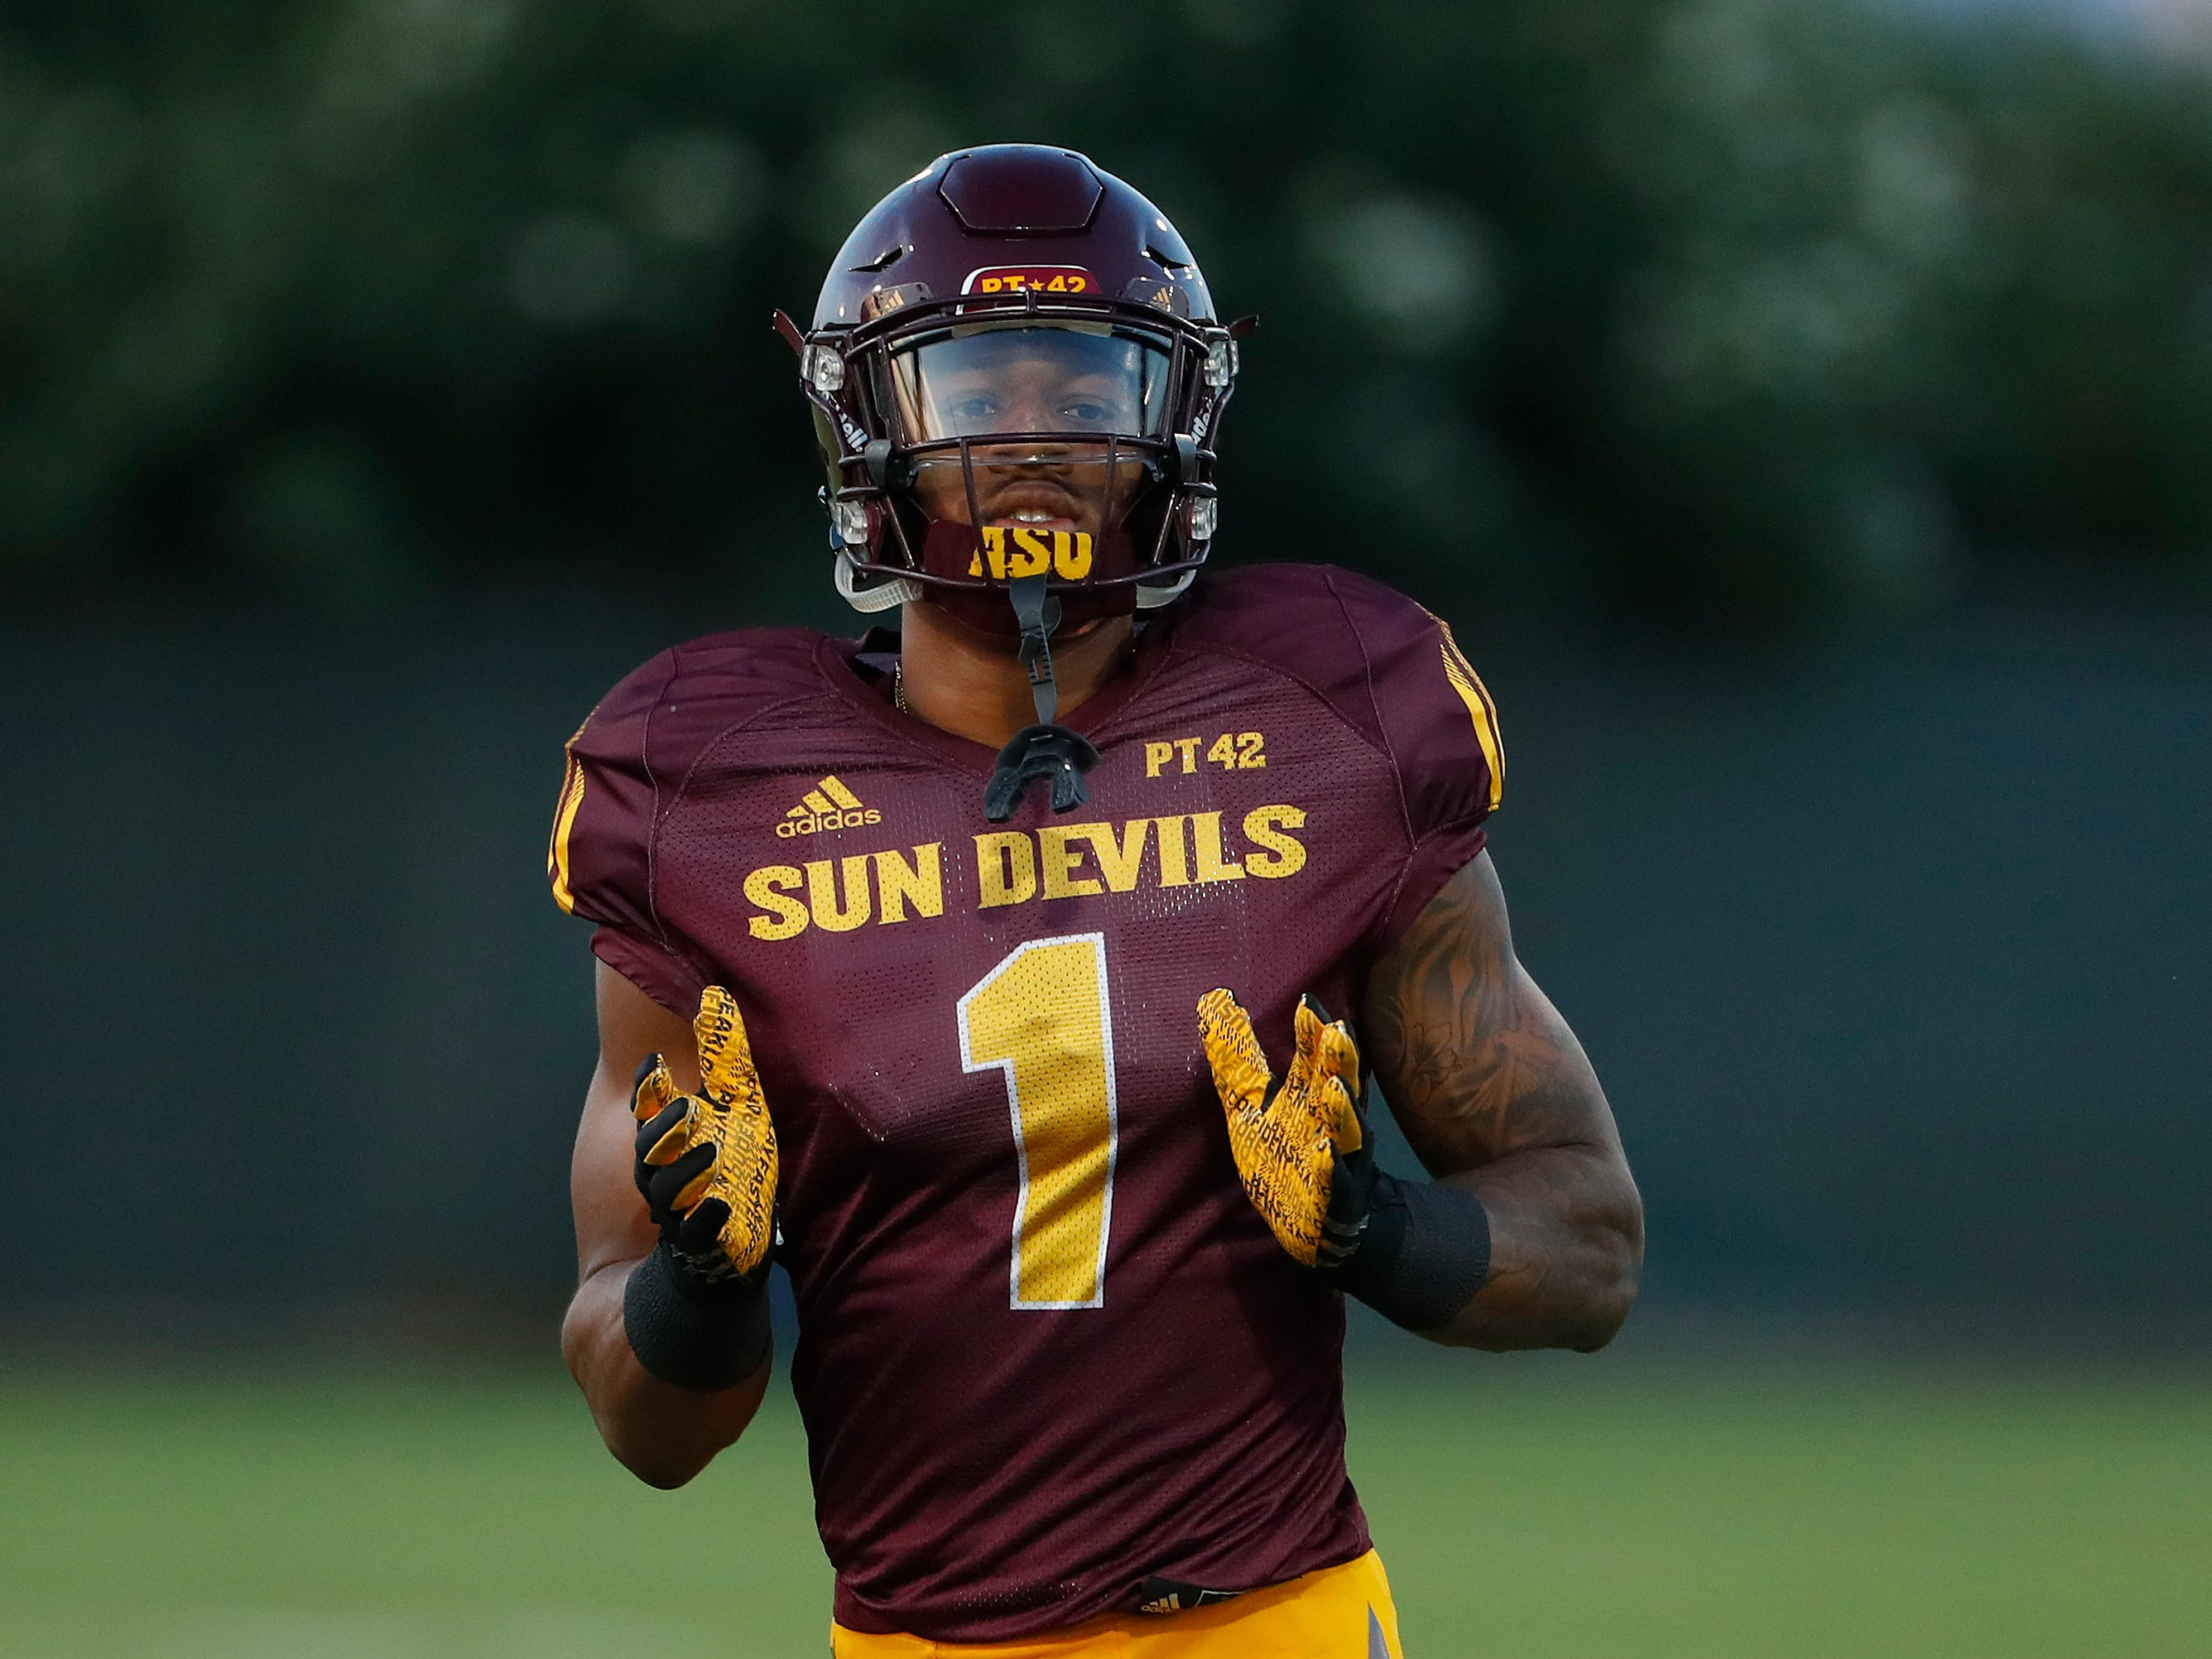 N'Keal Harry (1) calls for the ball during the ASU scrimmage at Kajikawa Practice Fields in Tempe, Ariz. on Aug. 11, 2018.